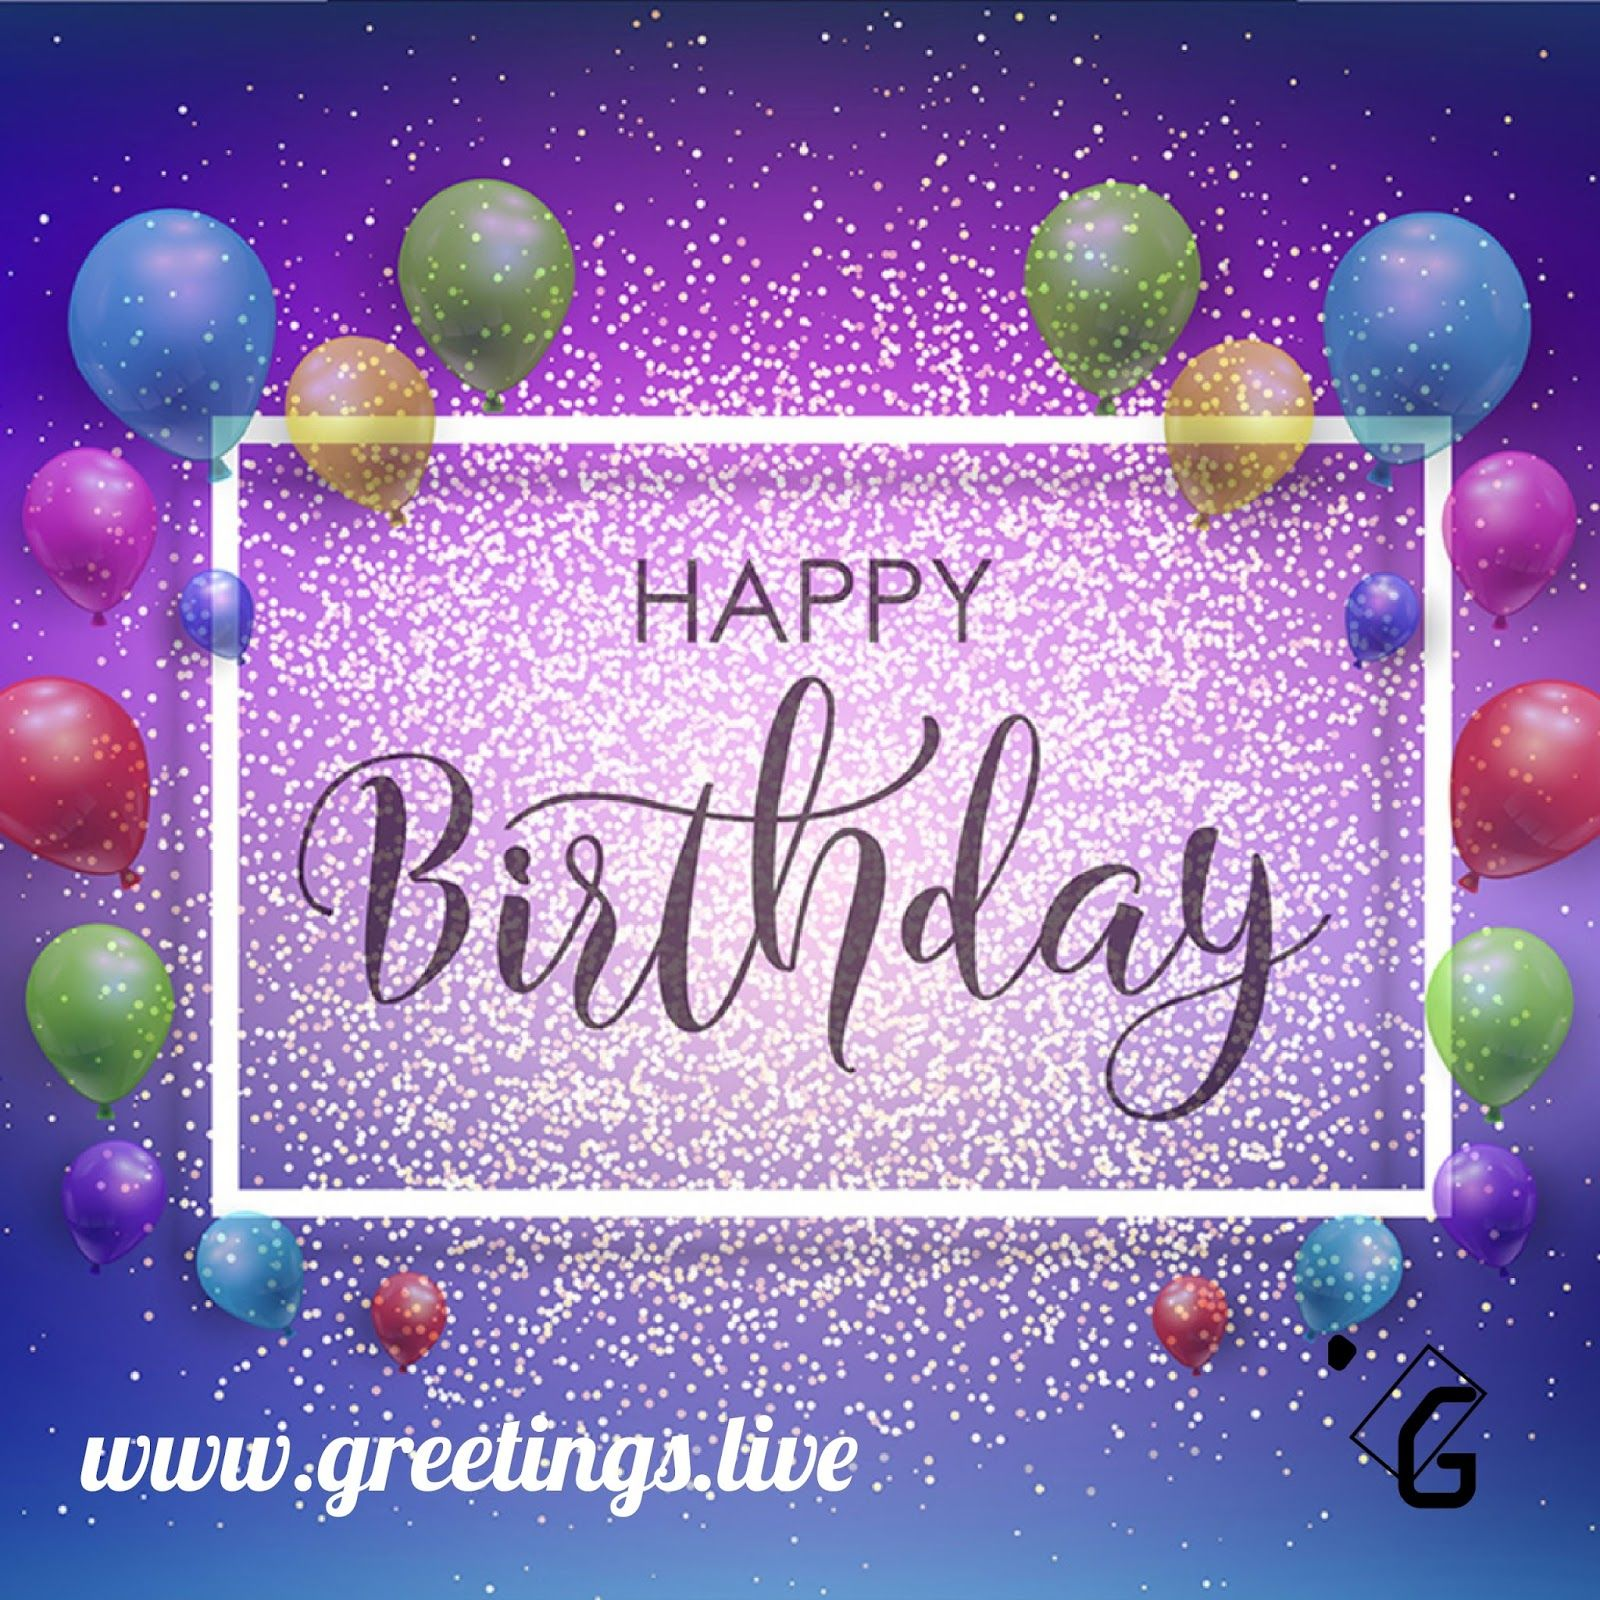 Greetings Live Special Birthday Wishes To All Friendsold School Friends College Whats App Facebook Friendsoffice